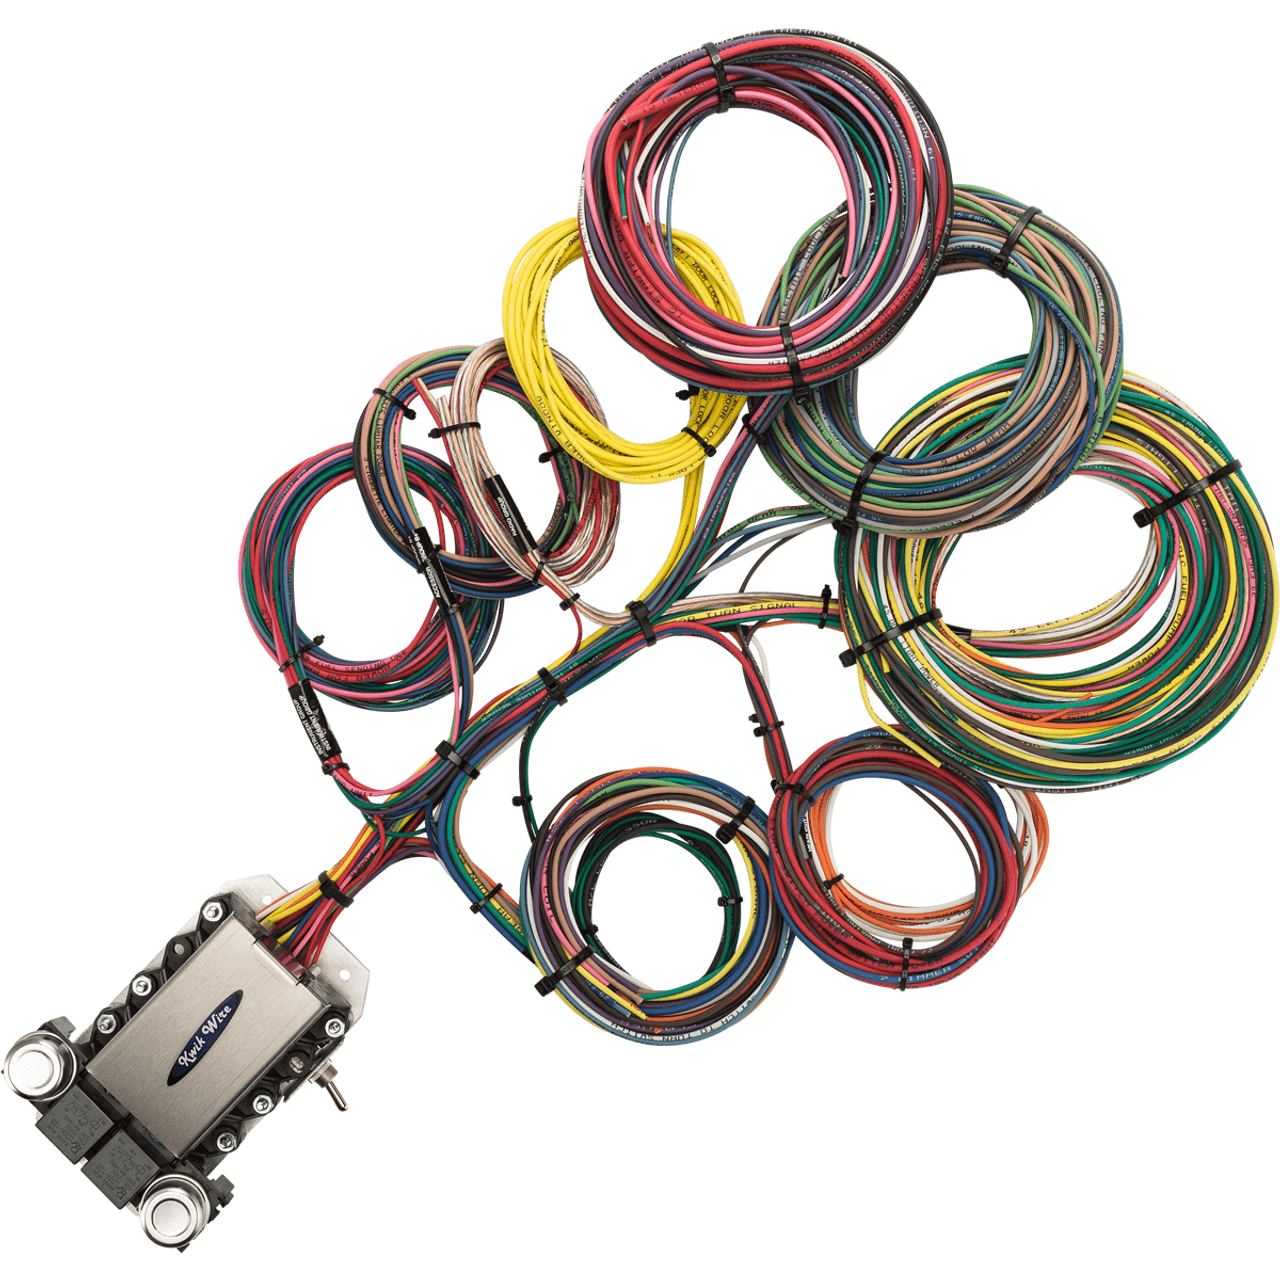 20 circuit ford wire harness kwikwire com electrify your rideford wire harness 13 [ 1280 x 1280 Pixel ]